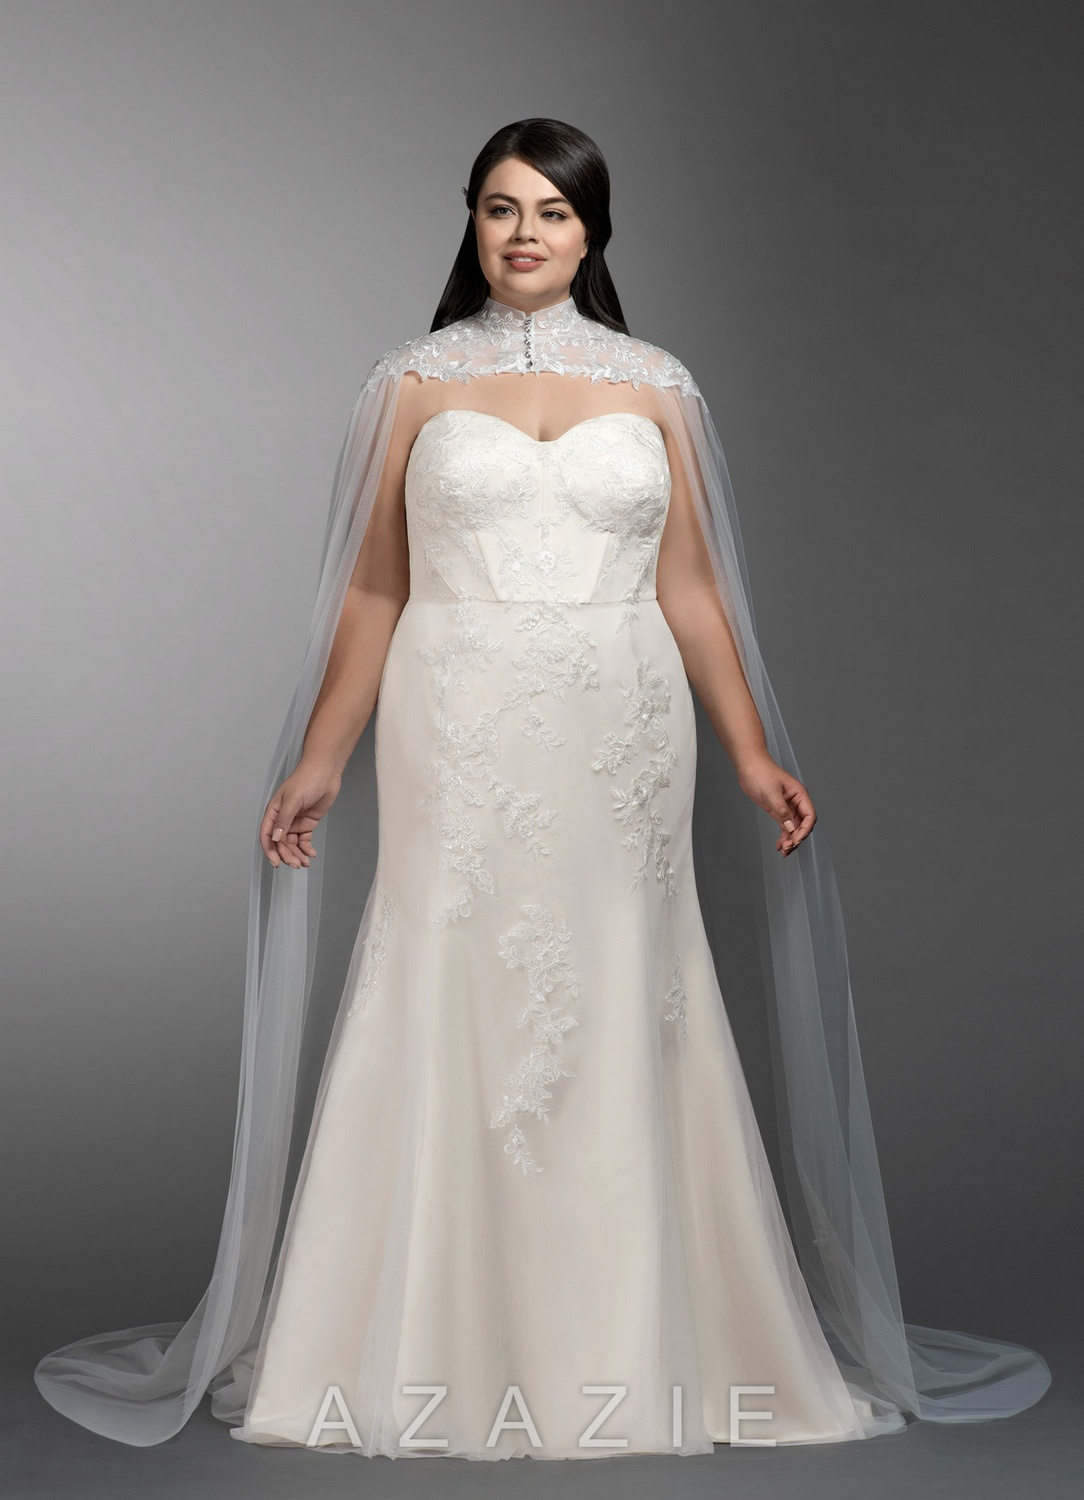 Guadalupe Plus Size Wedding Gown with Cape at Azazie